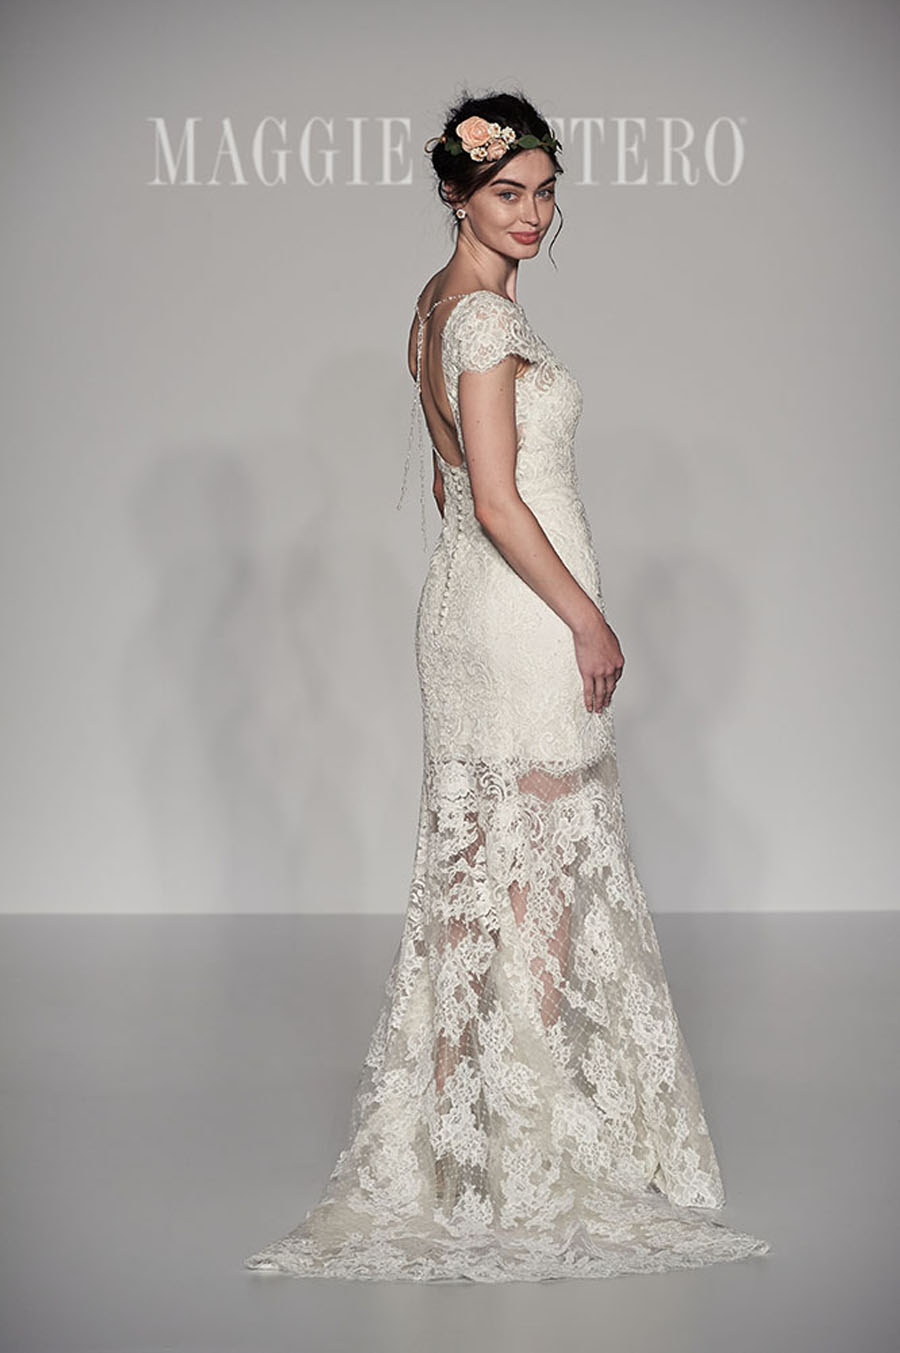 Maggie Sottero Spring 2017 Collection - Hudson Back